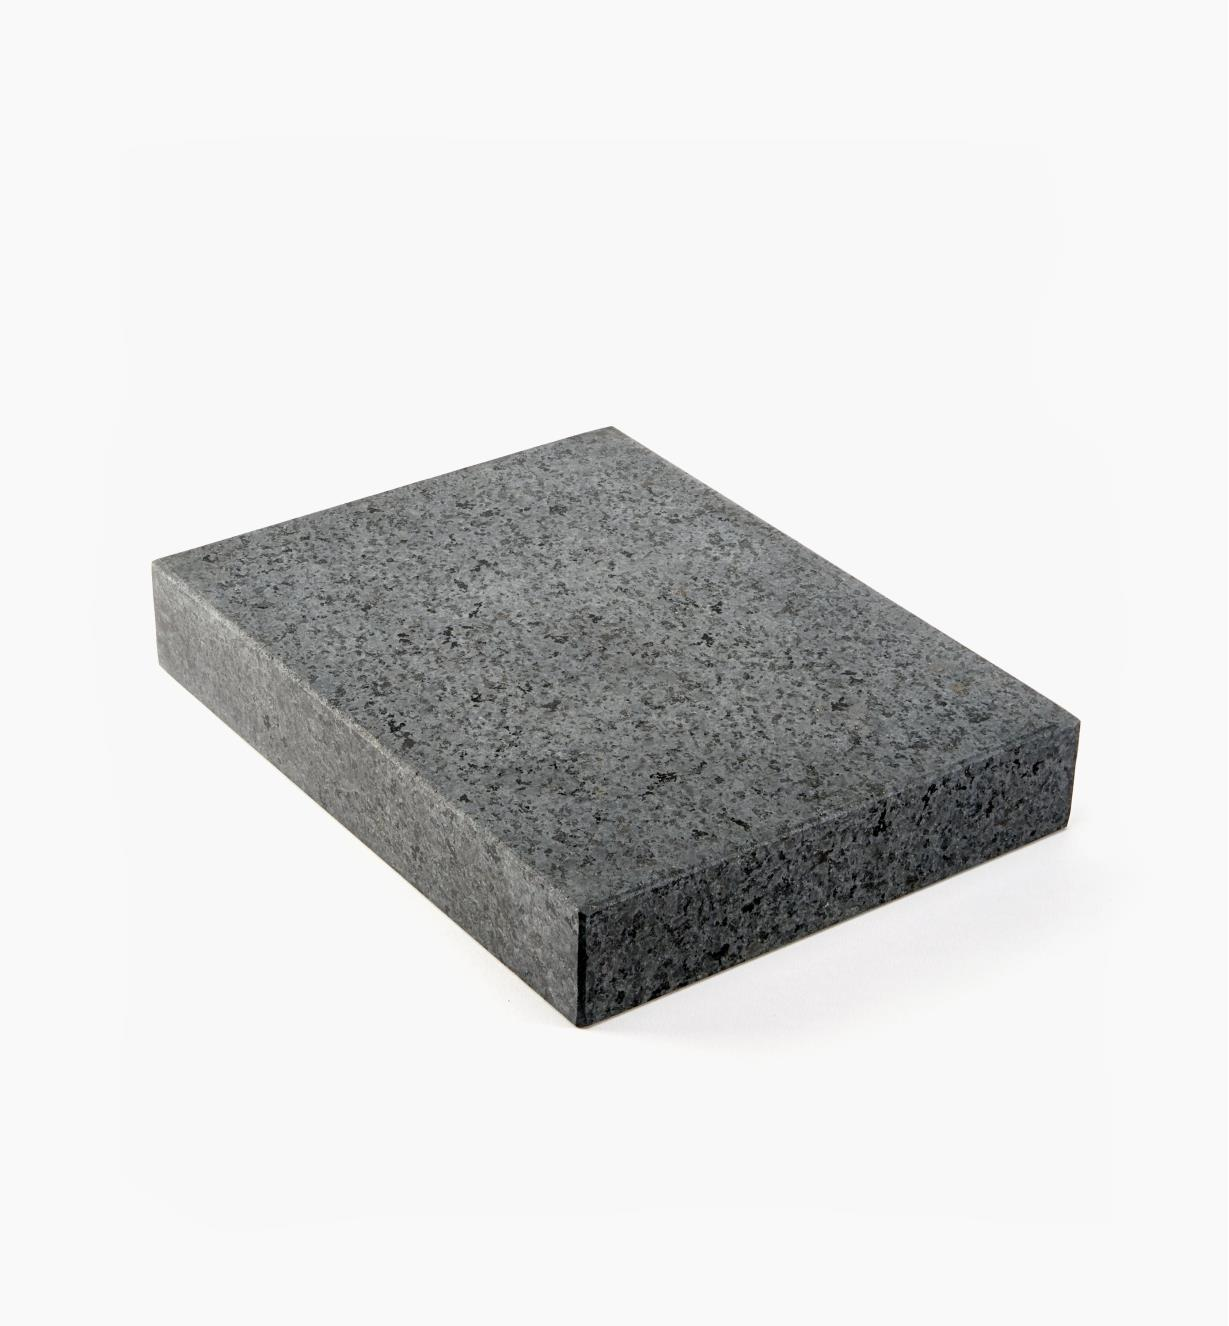 88N8501 - Granite Surface Plate